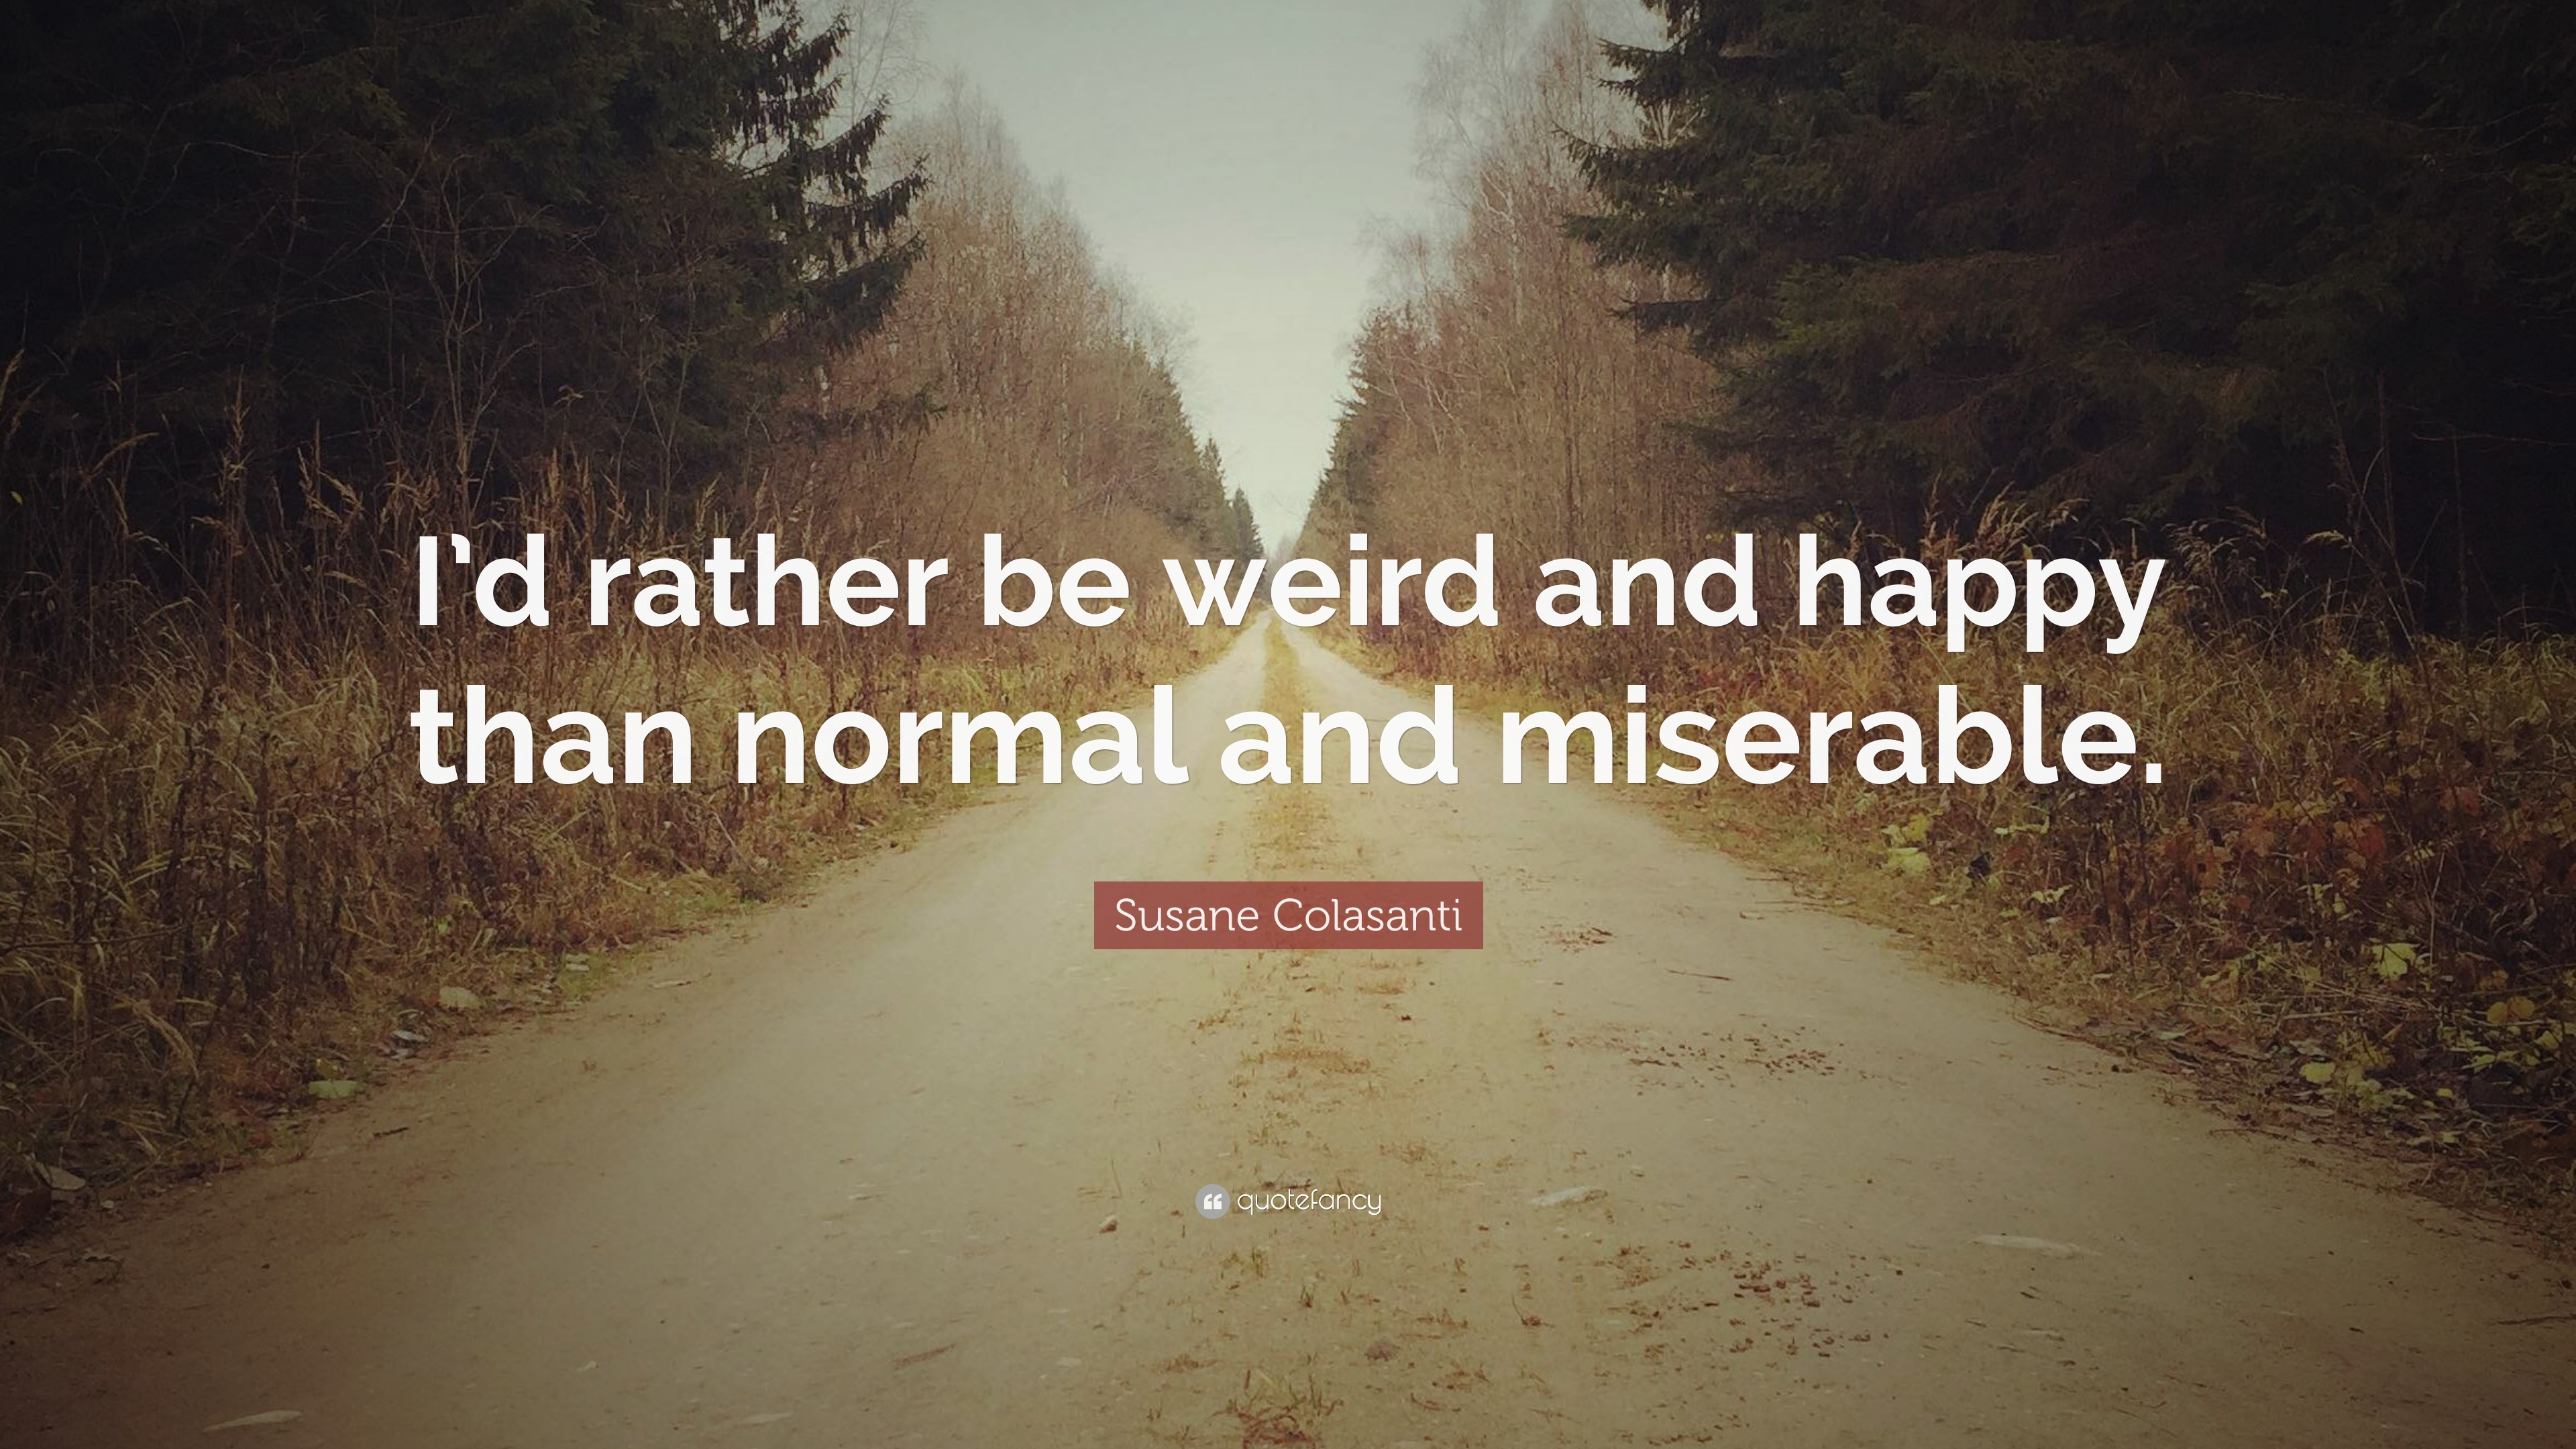 7 Wallpapers Susane Colasanti Quote Id Rather Be Weird And Happy Than Normal